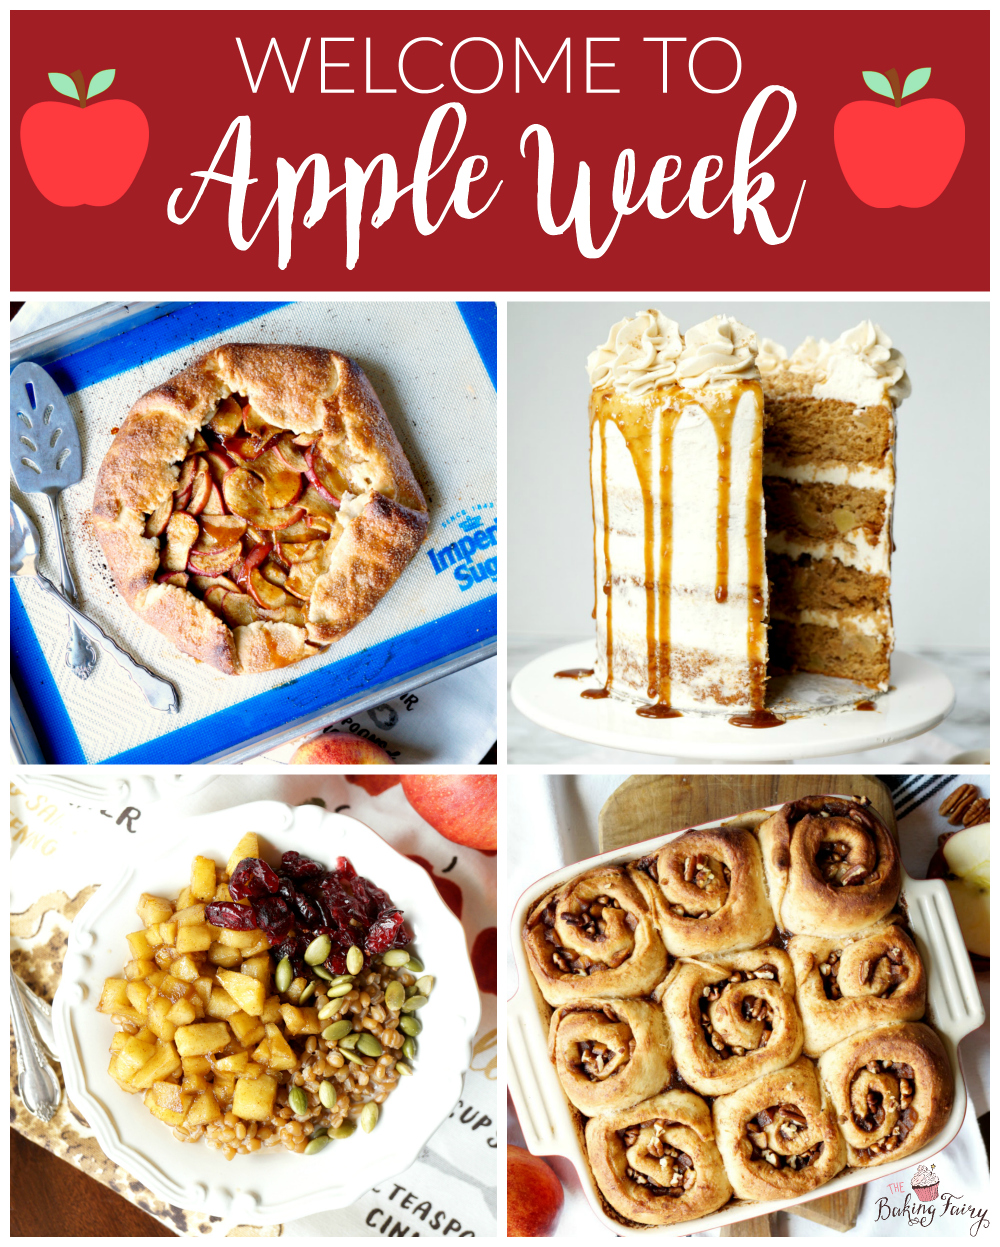 welcome to #AppleWeek | The Baking Fairy